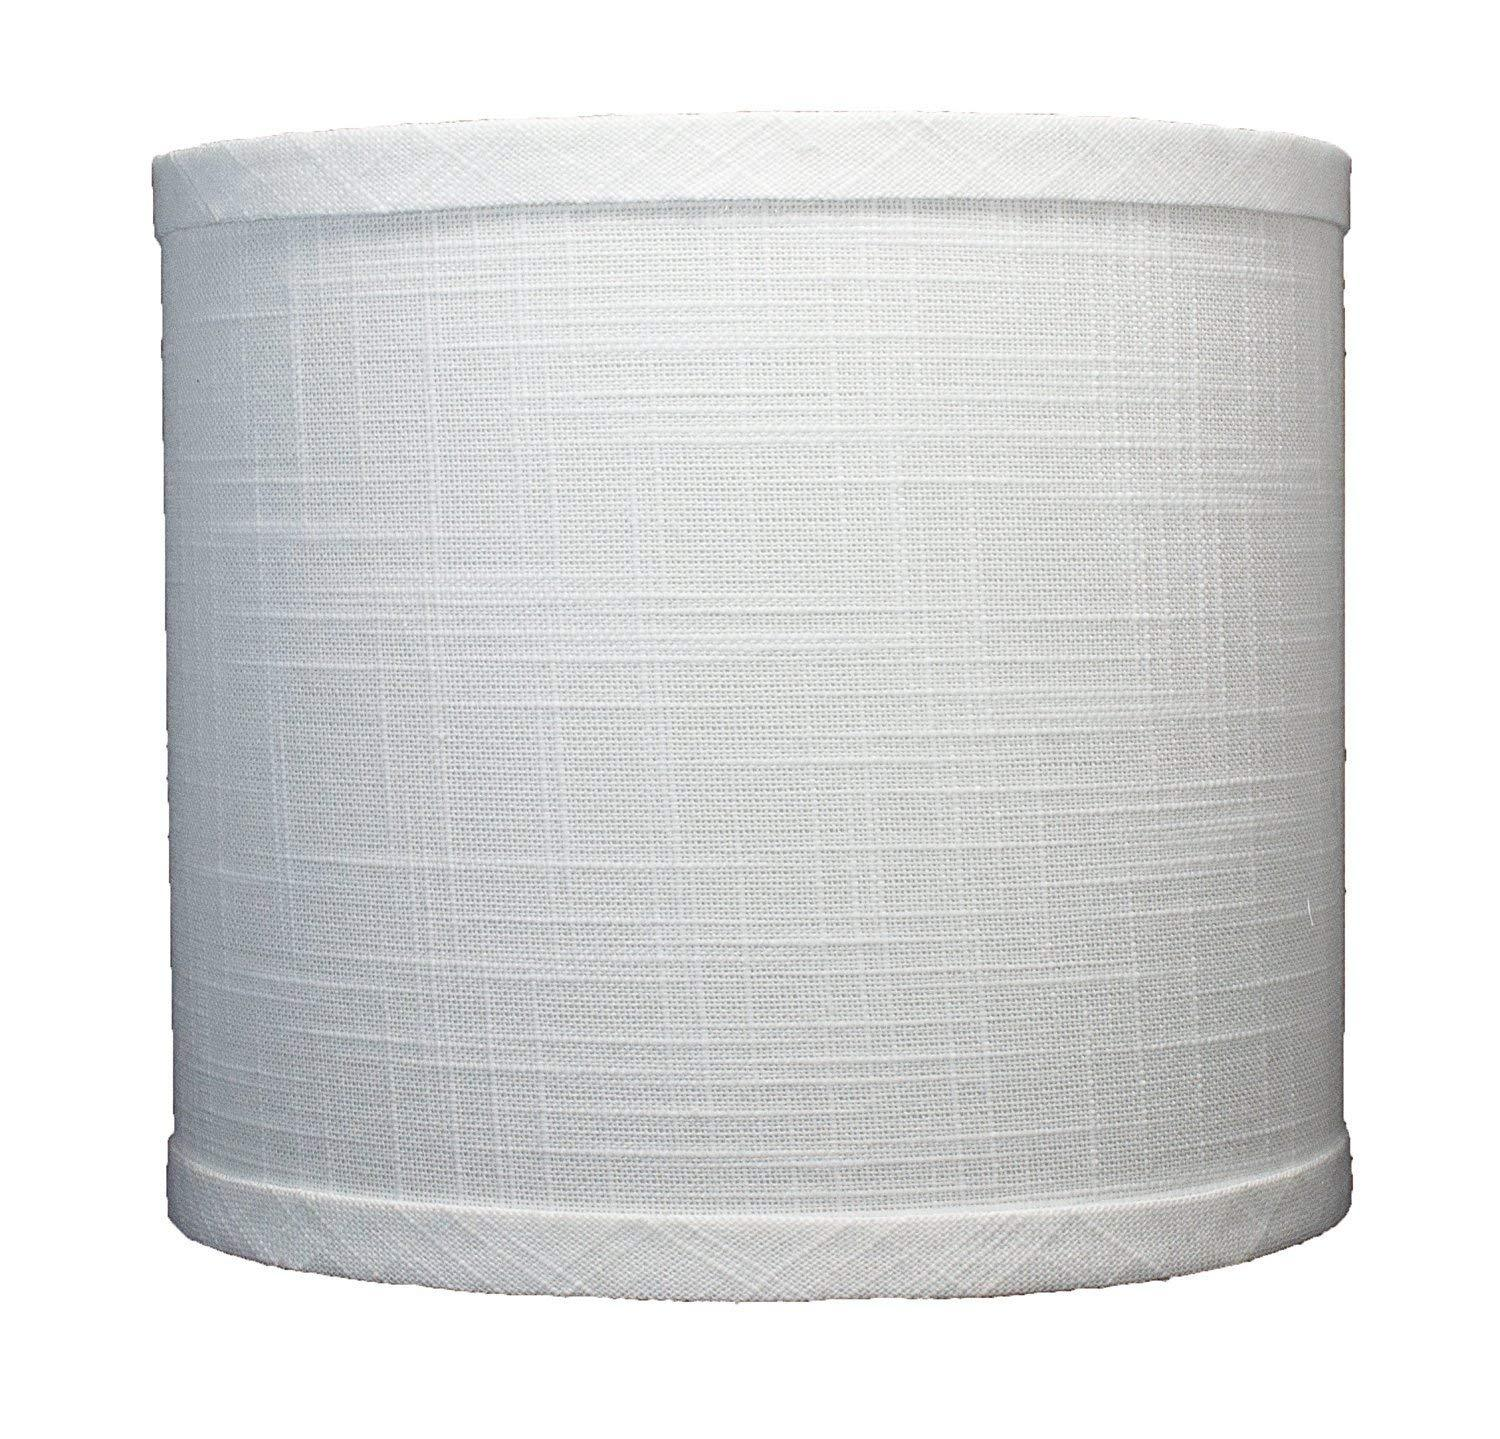 Linen Drum Lamp Shade 8 Inch By 8 Inch By 7 Inch Spider Urbanest